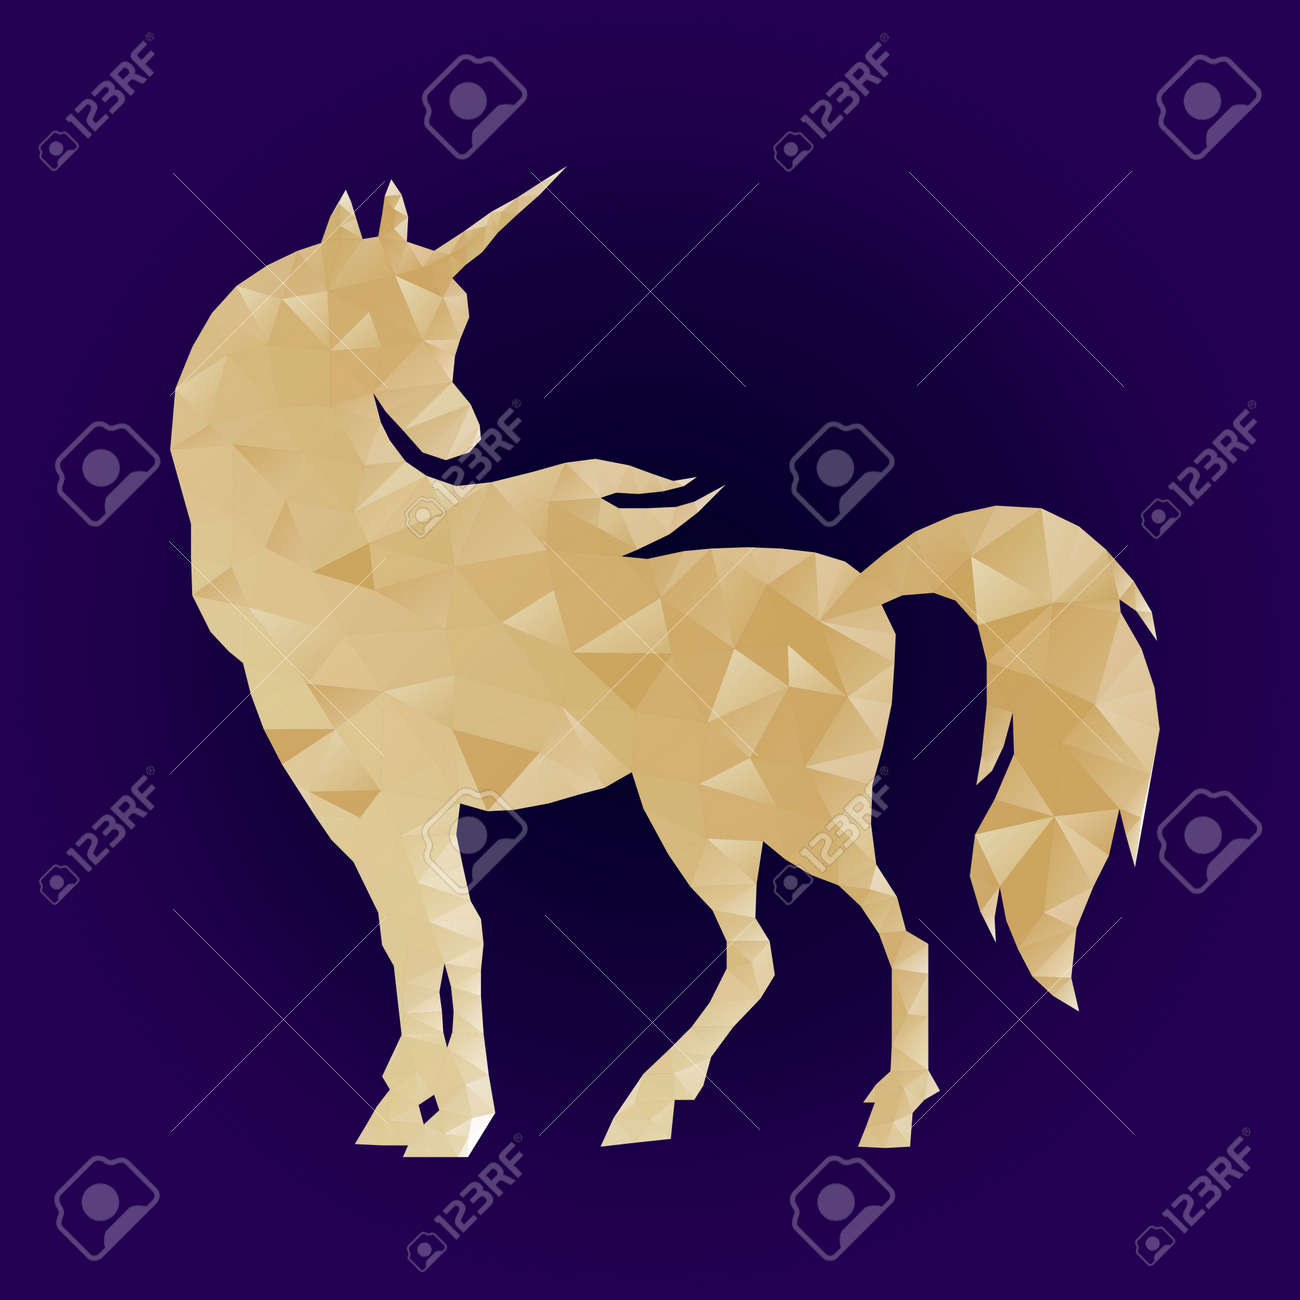 Geometric Triangular Polygonal Illustration Of Unicorn With Gradient Royalty Free Cliparts Vectors And Stock Illustration Image 93464777